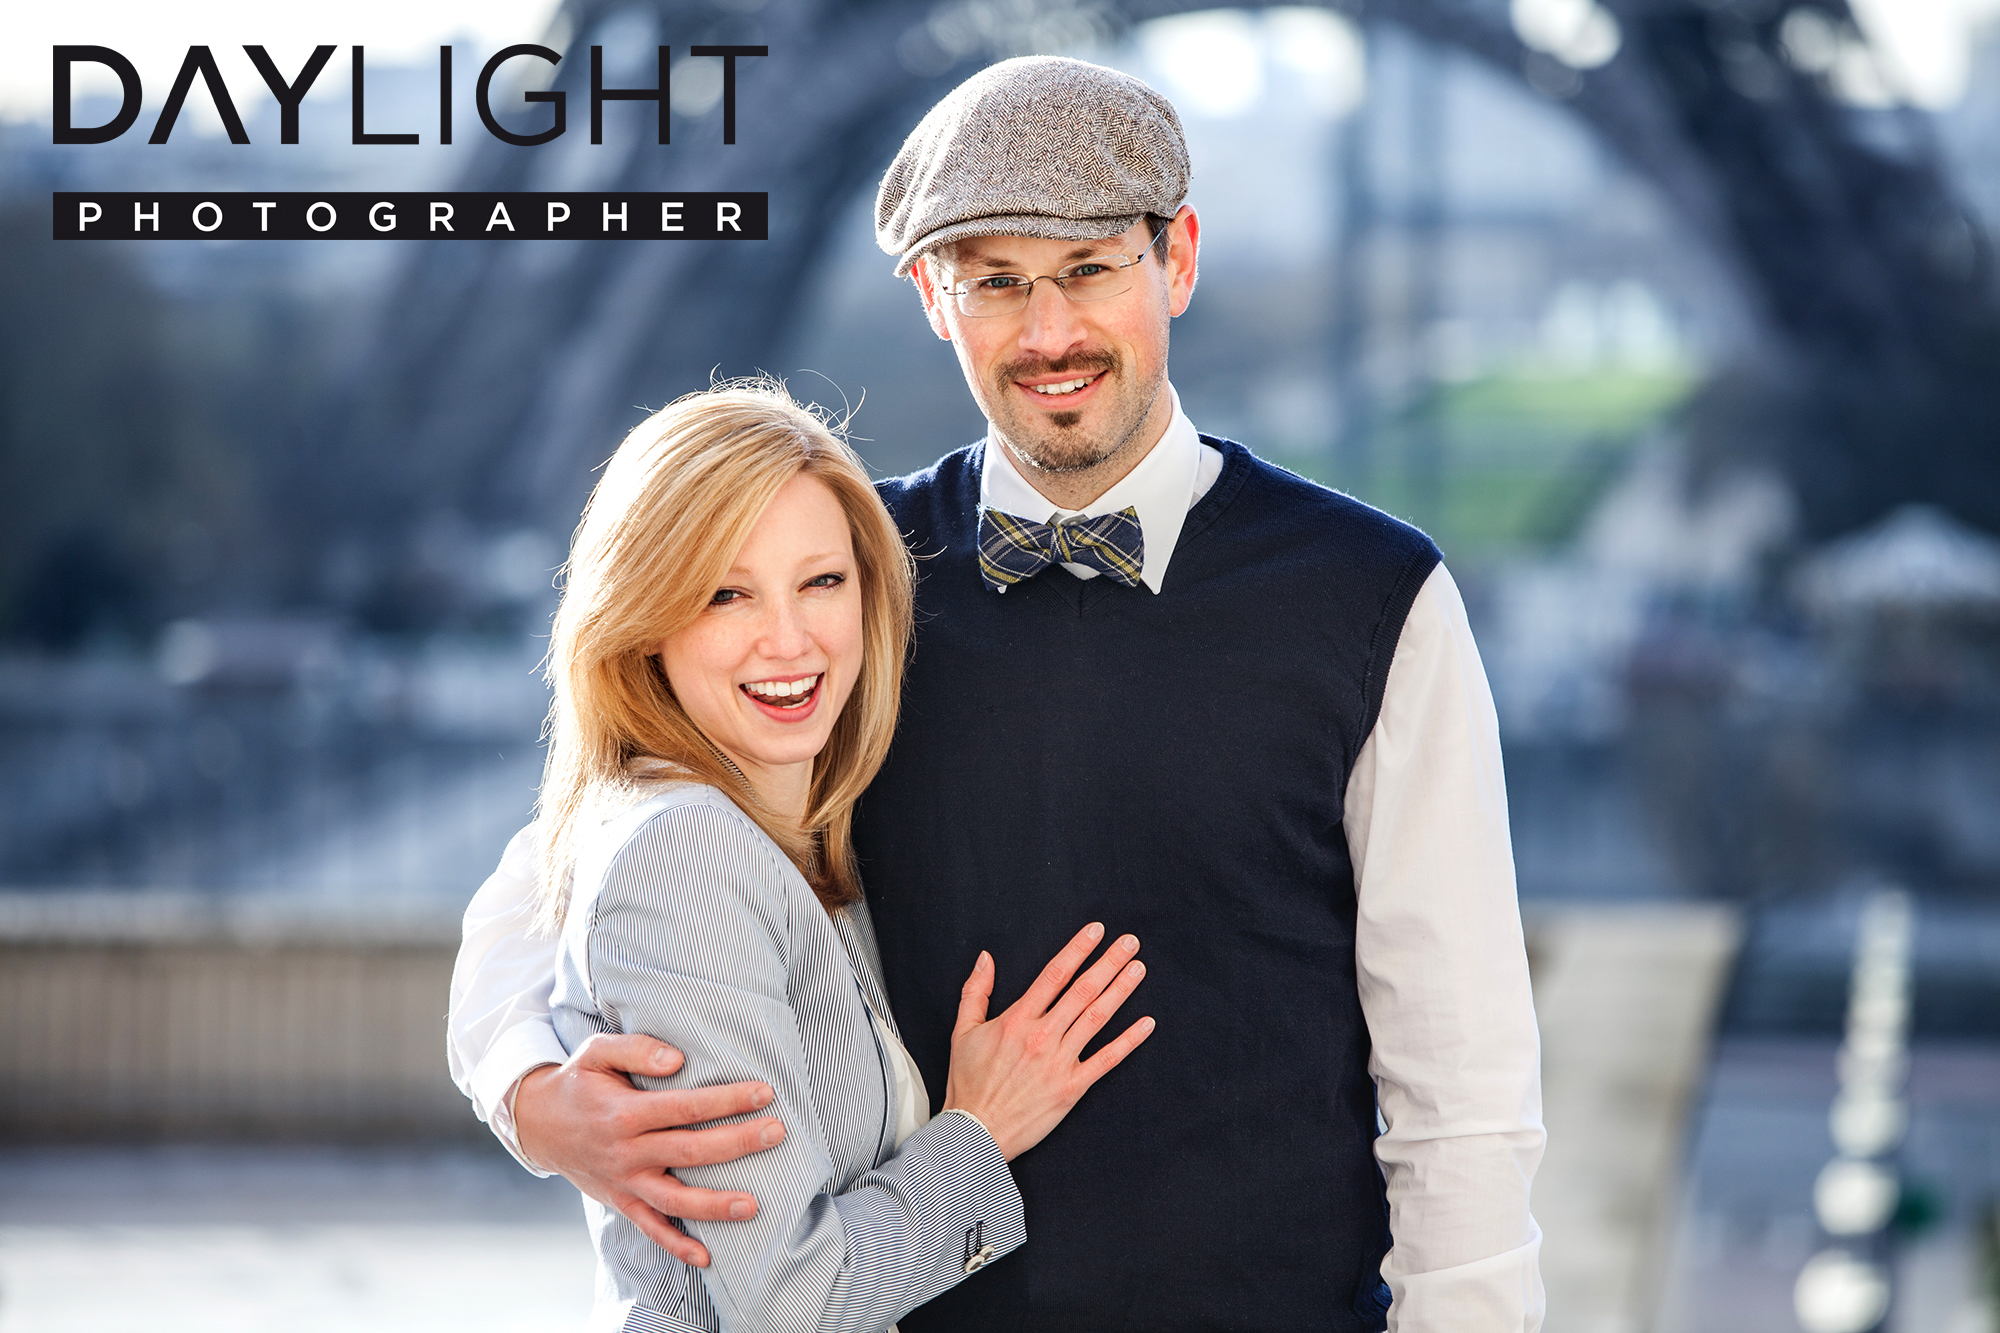 couple photoshooting in paris pricing